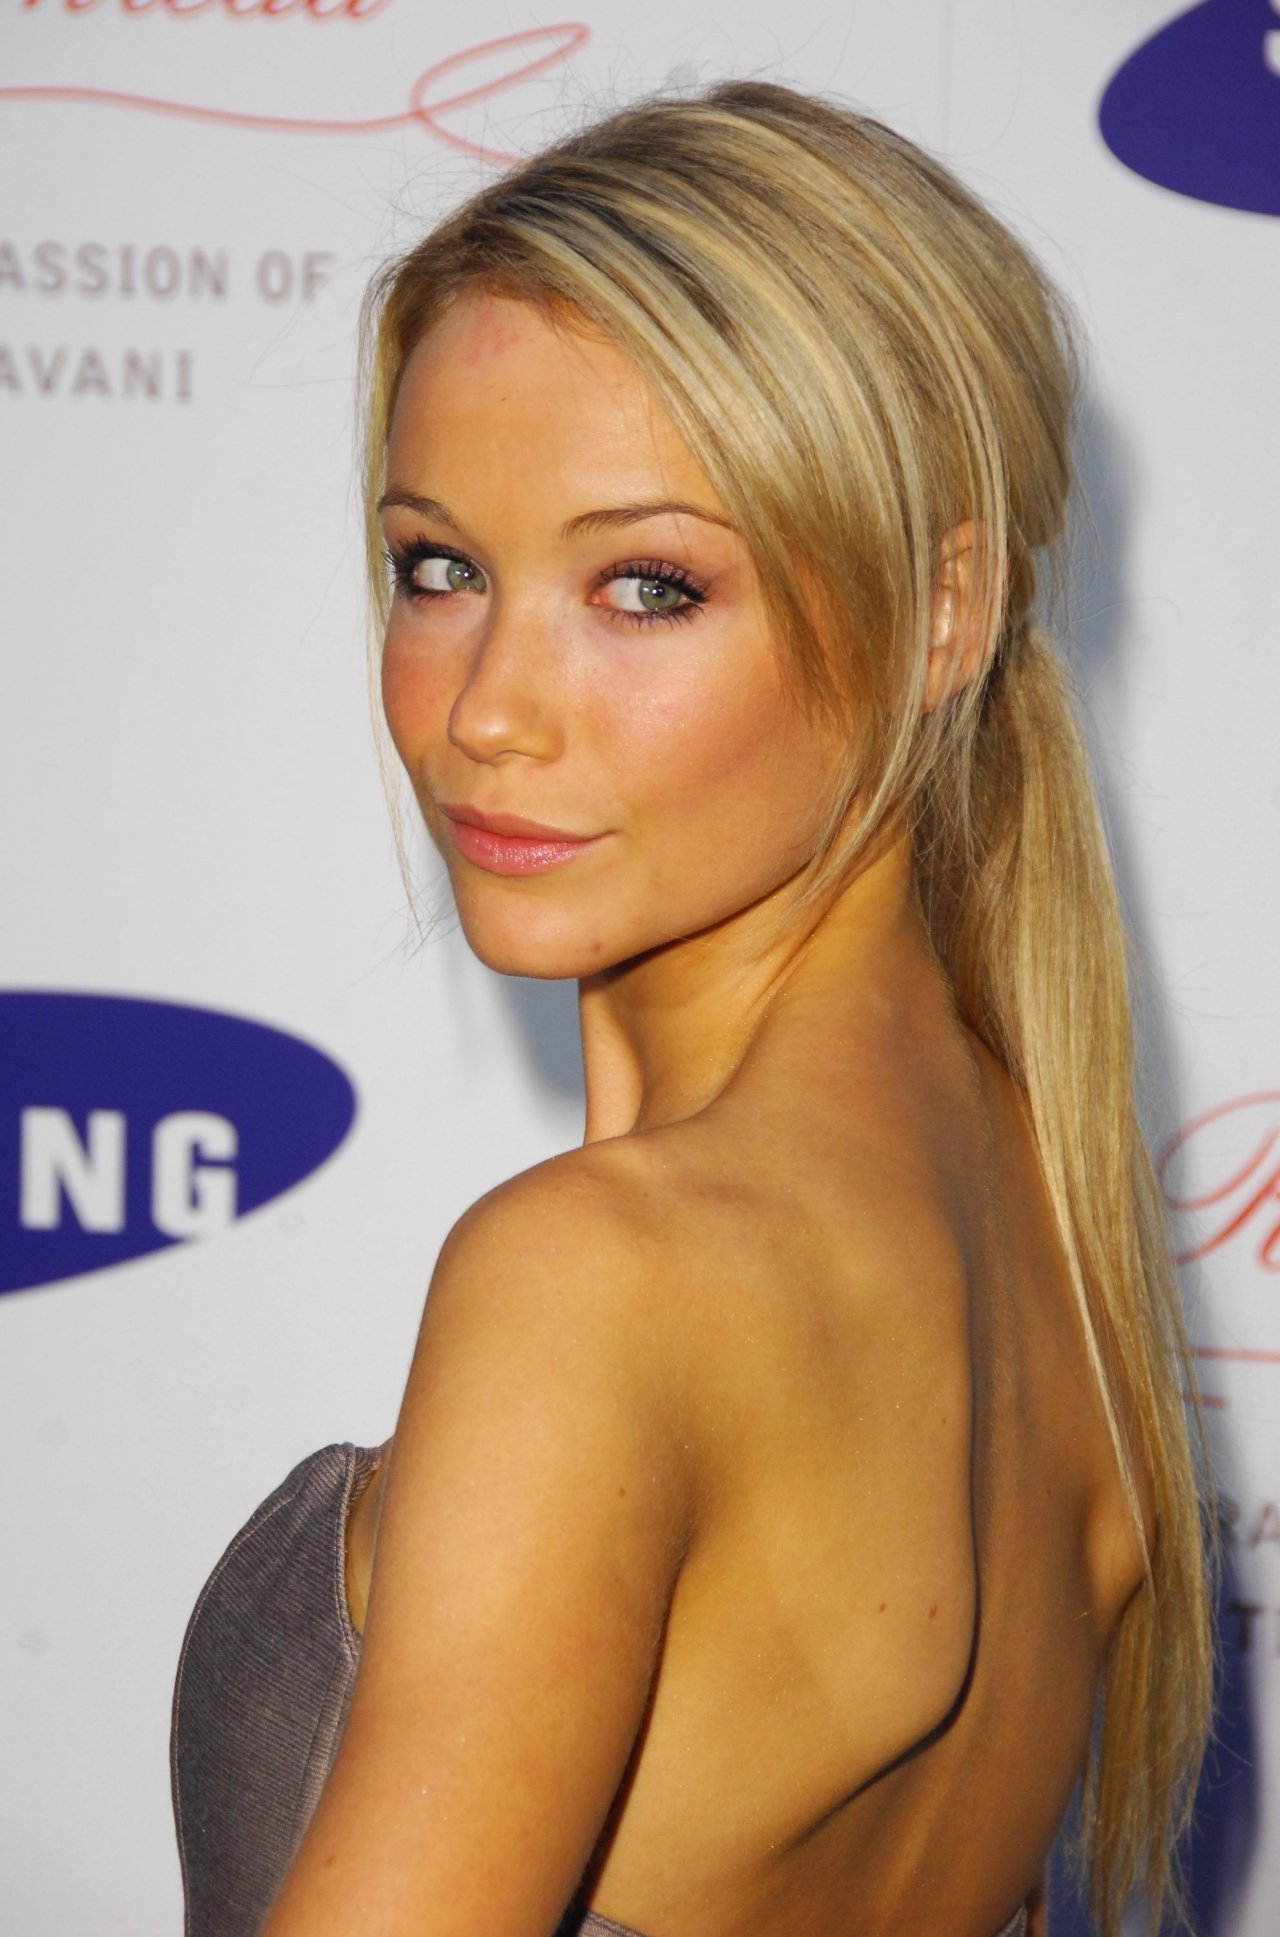 Katrina Bowden - Photos